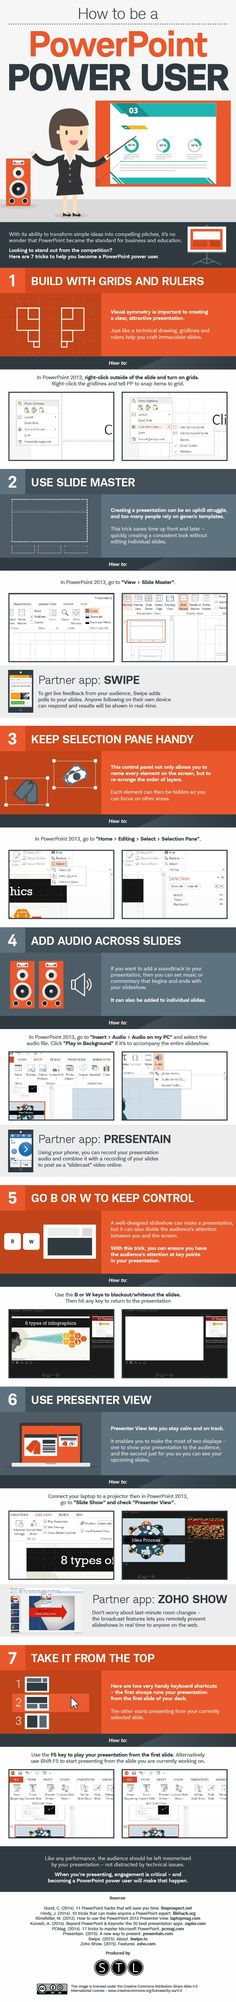 Coolmathgamesus  Ravishing Presentation Tips And Power Points On Pinterest With Gorgeous How To Be A Powerpoint Power User Infographic  Visualistan With Cute Chart In Powerpoint Also Move Under Direct Fire Powerpoint In Addition Pdf To Powerpoint Converter Free Online And Powerpoint Gantt As Well As Driving Safety Powerpoint Additionally Powerpoint Poster Presentation Template From Pinterestcom With Coolmathgamesus  Gorgeous Presentation Tips And Power Points On Pinterest With Cute How To Be A Powerpoint Power User Infographic  Visualistan And Ravishing Chart In Powerpoint Also Move Under Direct Fire Powerpoint In Addition Pdf To Powerpoint Converter Free Online From Pinterestcom